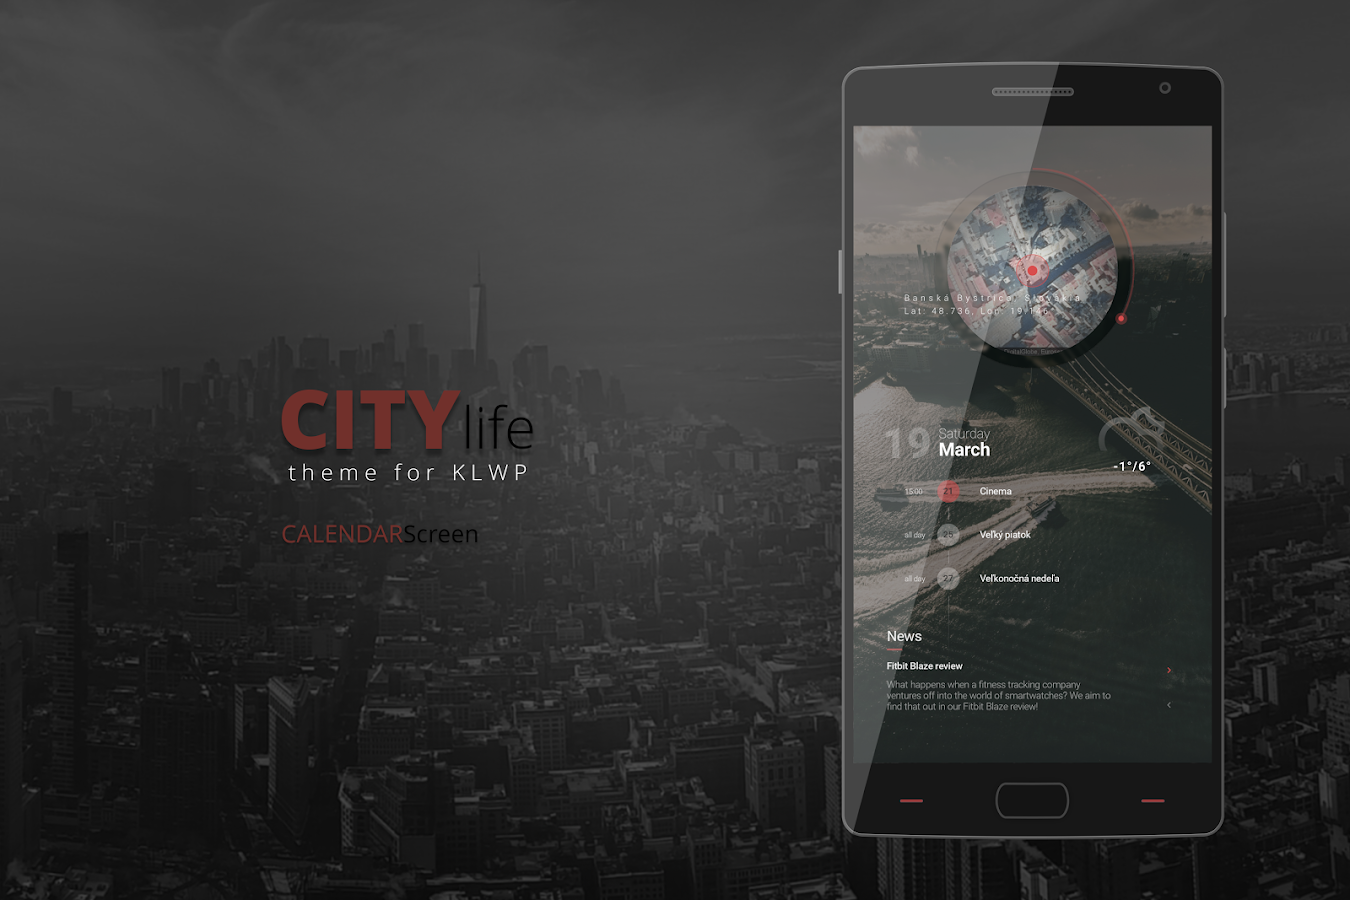 City Life Theme for KLWP Screenshot 2